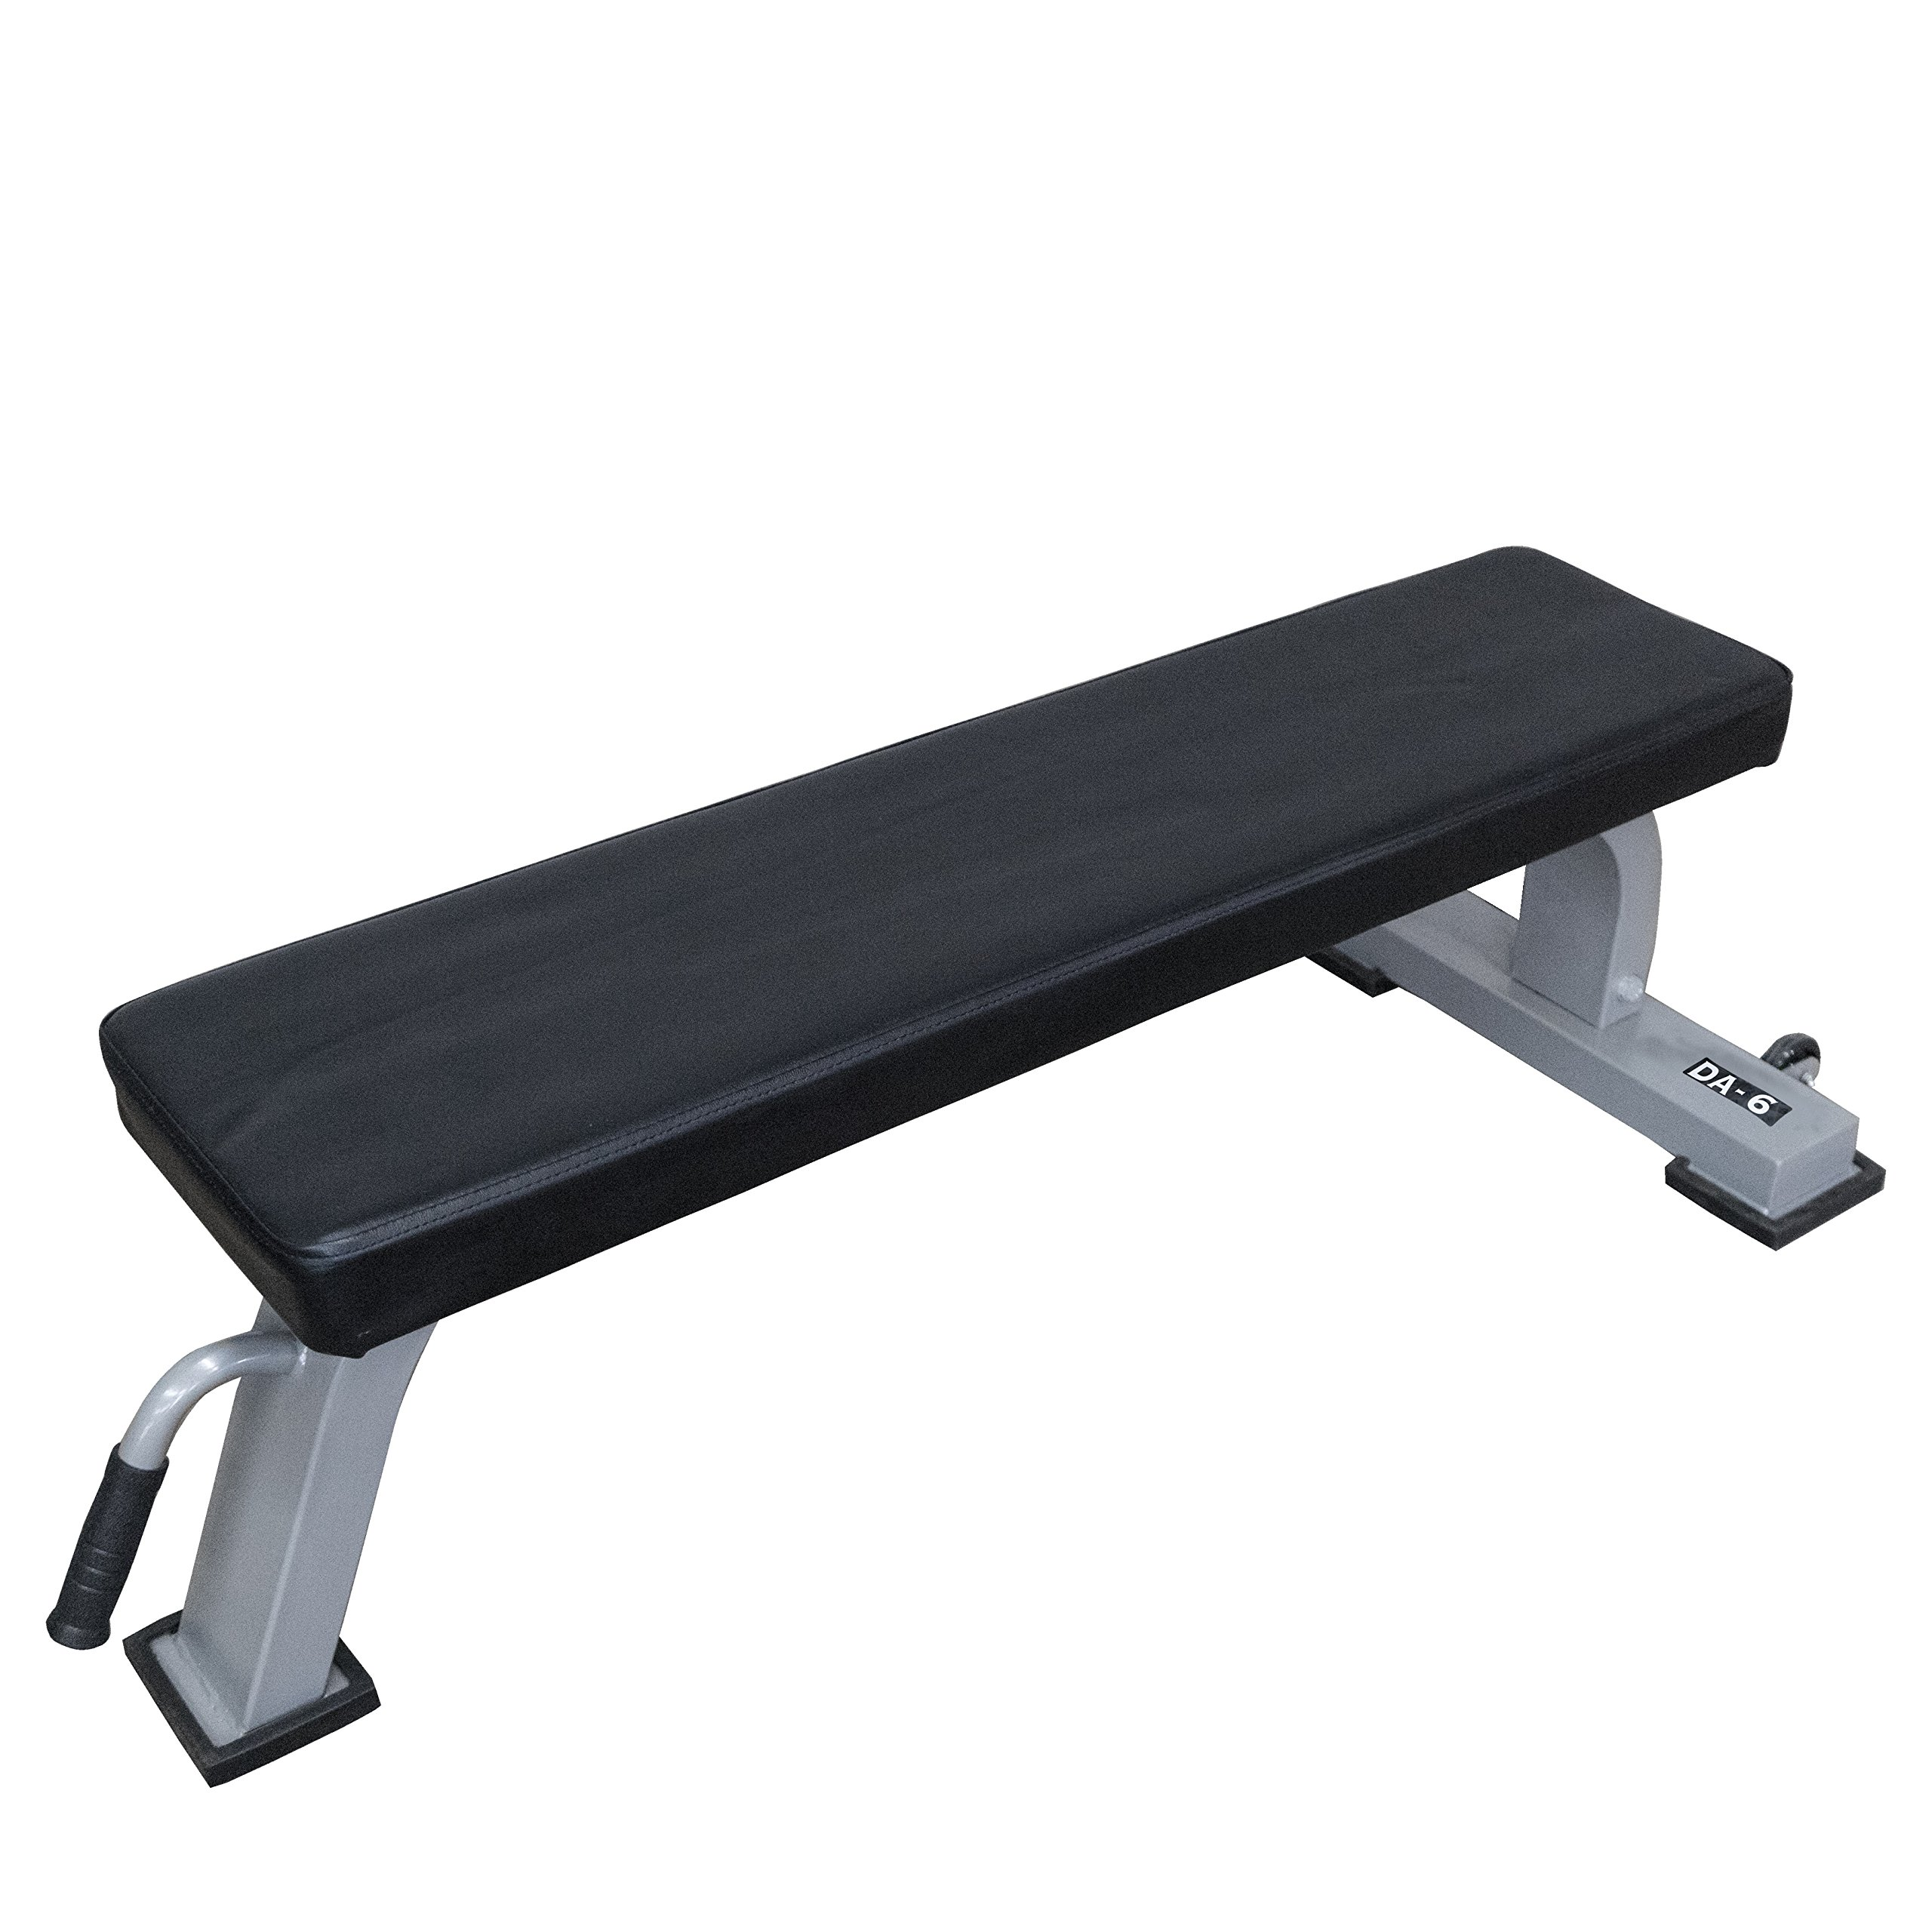 Valor Fitness Pro Flat Bench with Wheels